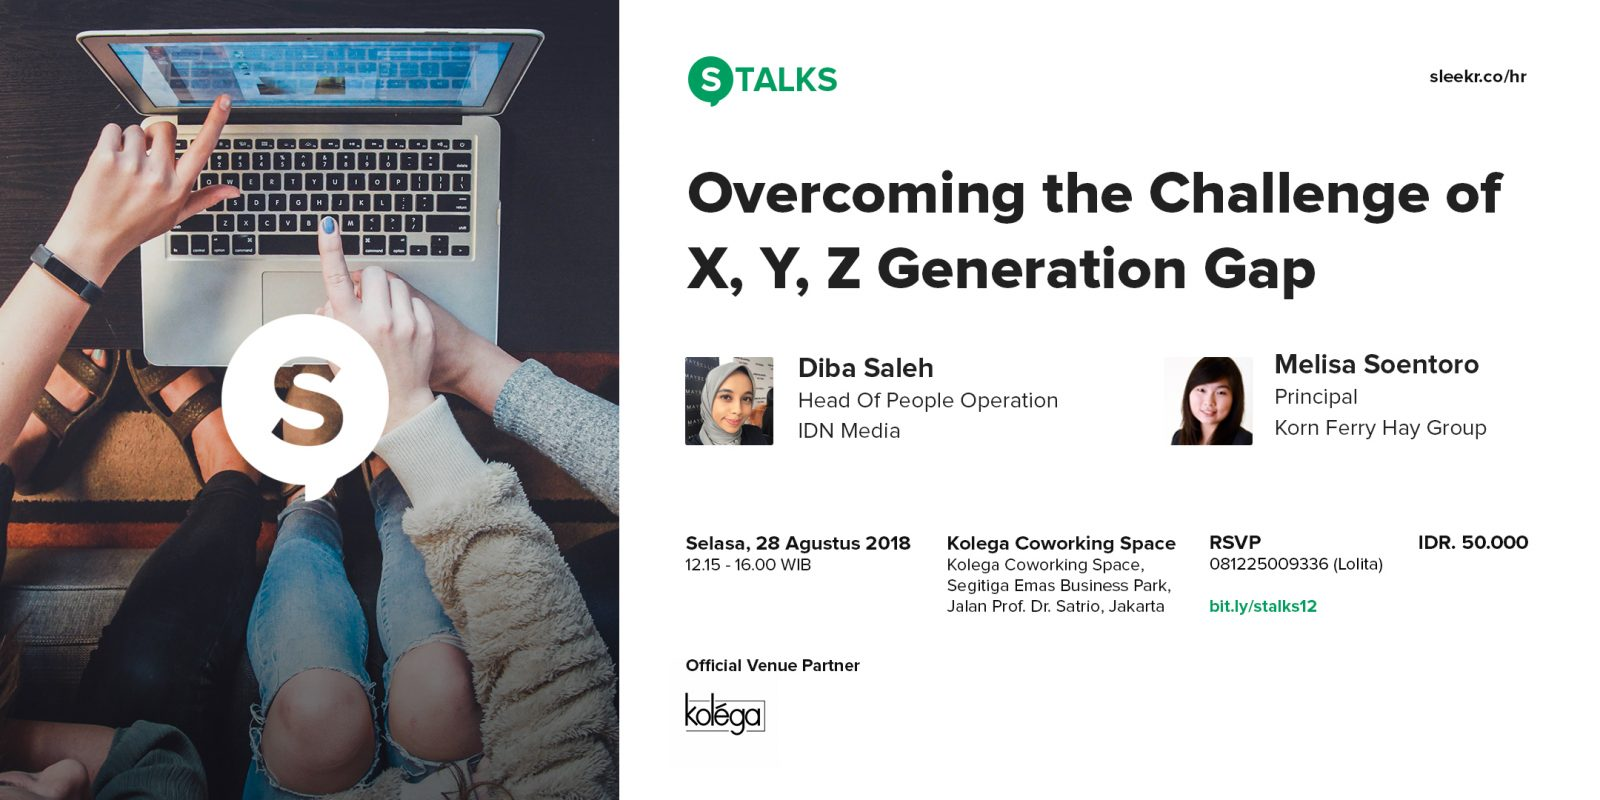 S-TALKS Overcoming the Challenge of X, Y, Z Generation Gap